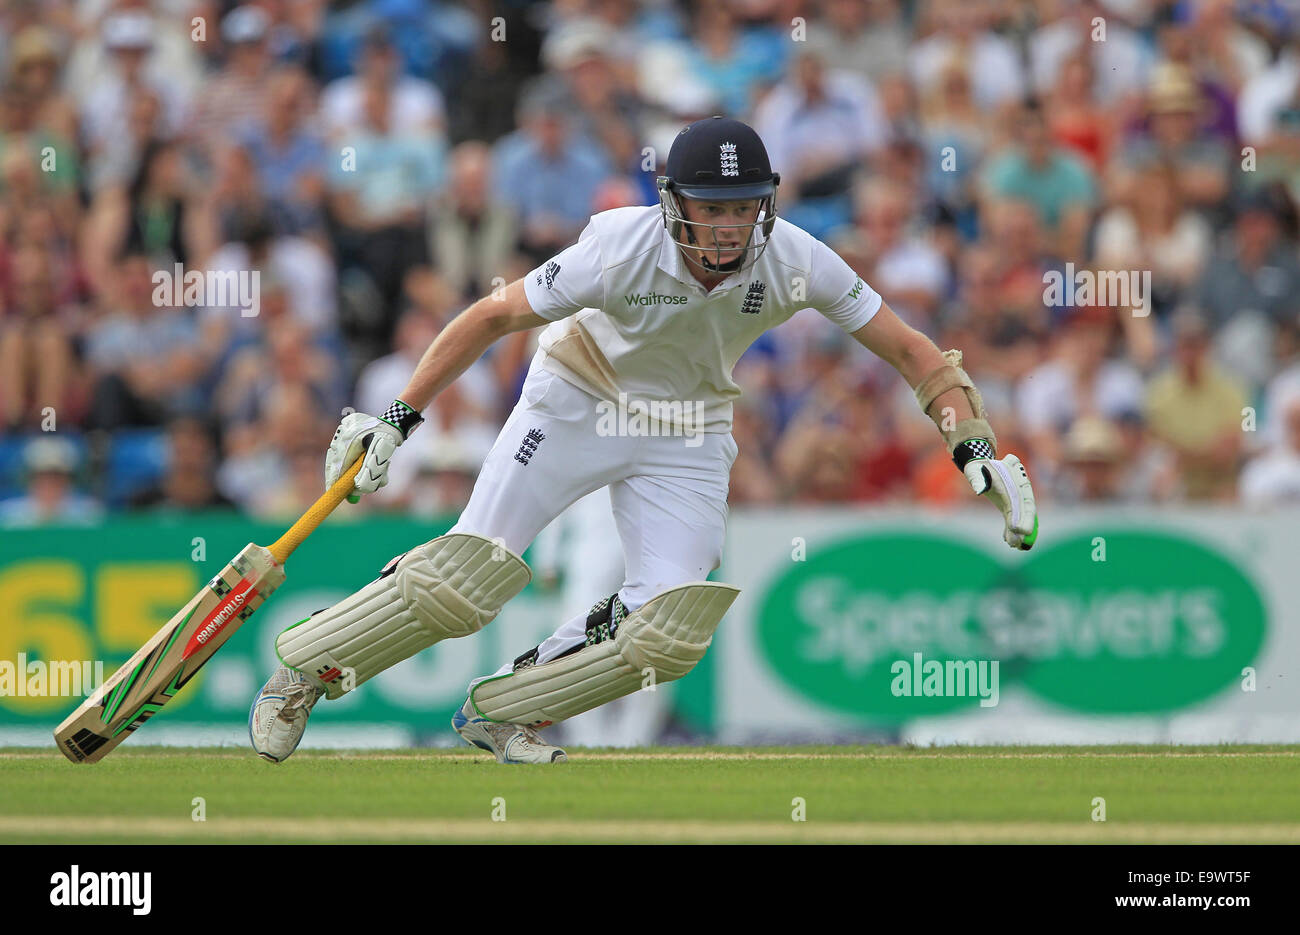 Cricket - Sam Robson of England in action during the Investec Second Test match against Sri Lanka at Headingley - Stock Image